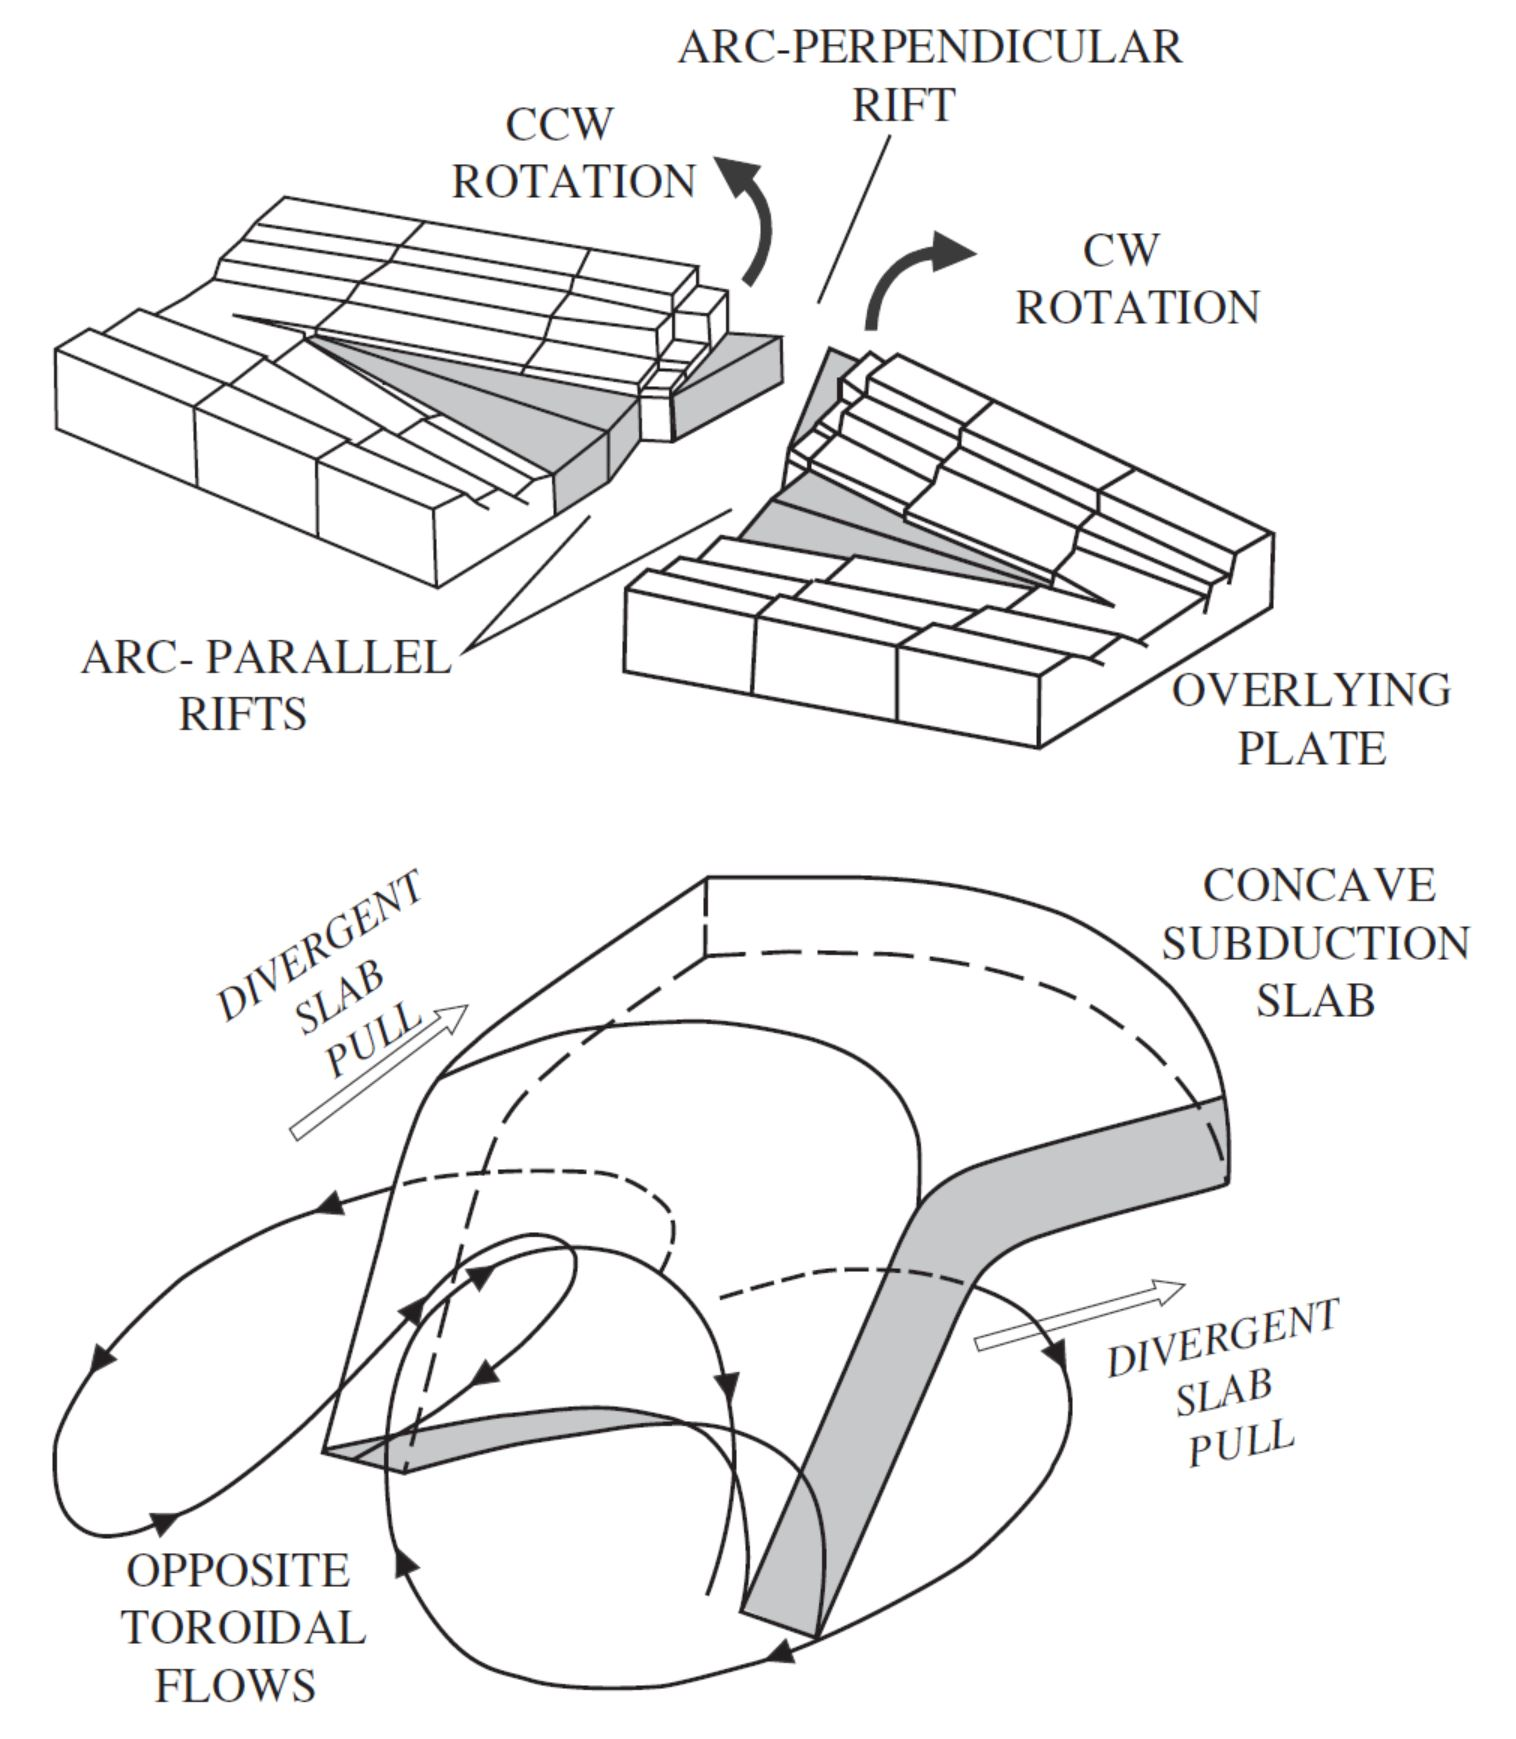 jay patton online the center body and range of technically Honeymoon in Fiji proposed geodynamic mechanism for concave slab under the nfb rollback induces slab curvature and opposite toroidal flows with upwelling and downwelling